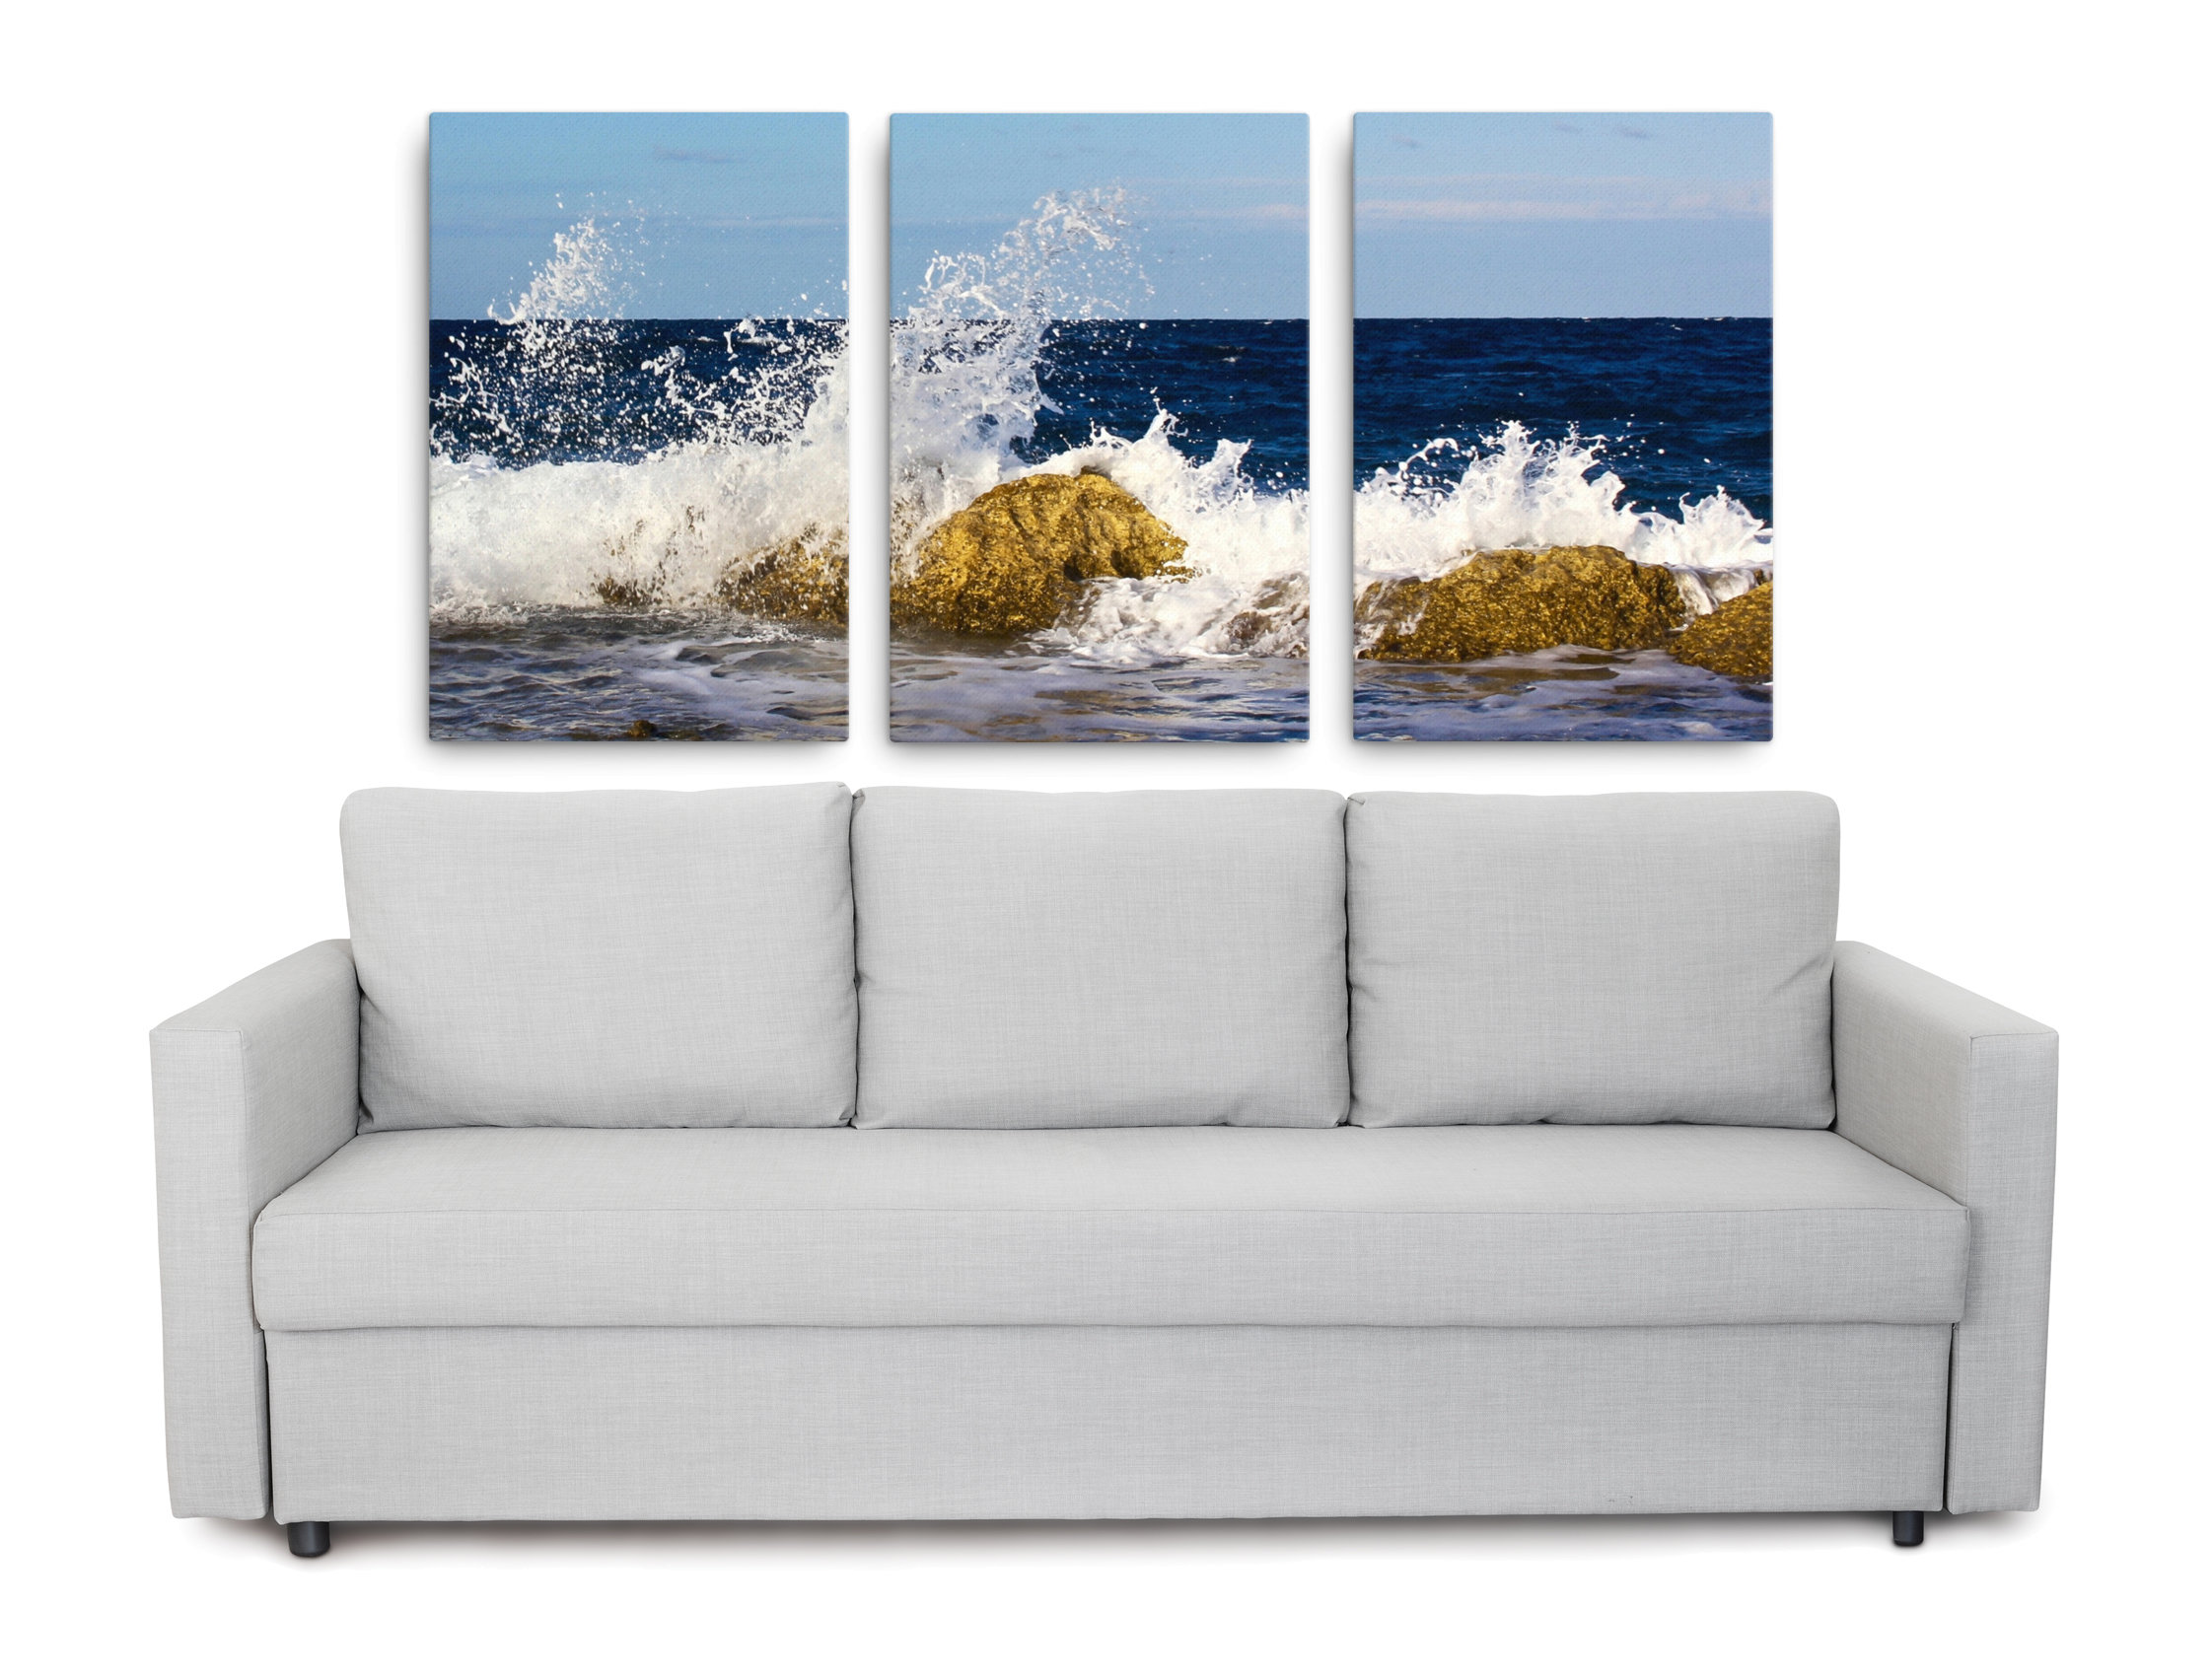 Wall Art Canvas Prints.3 Piece Ocean Wall Art Large Triptych Canvas Set 72x36 Inches